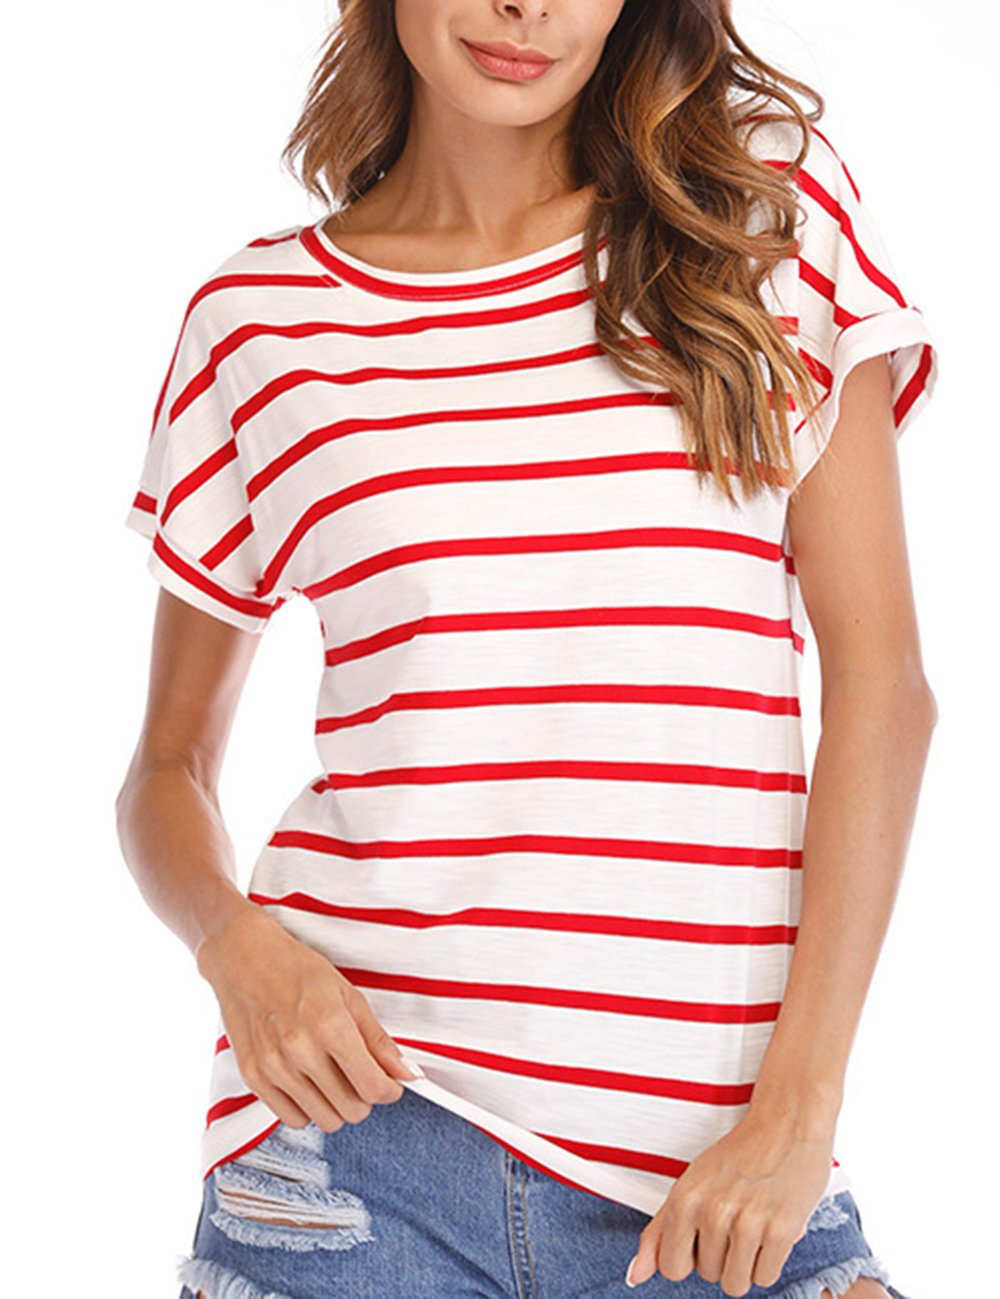 Women's Summer Crew Neck Loose Fit Shirts Short Sleeve Stripe T-Shirts Casual Blouse Tops L Red